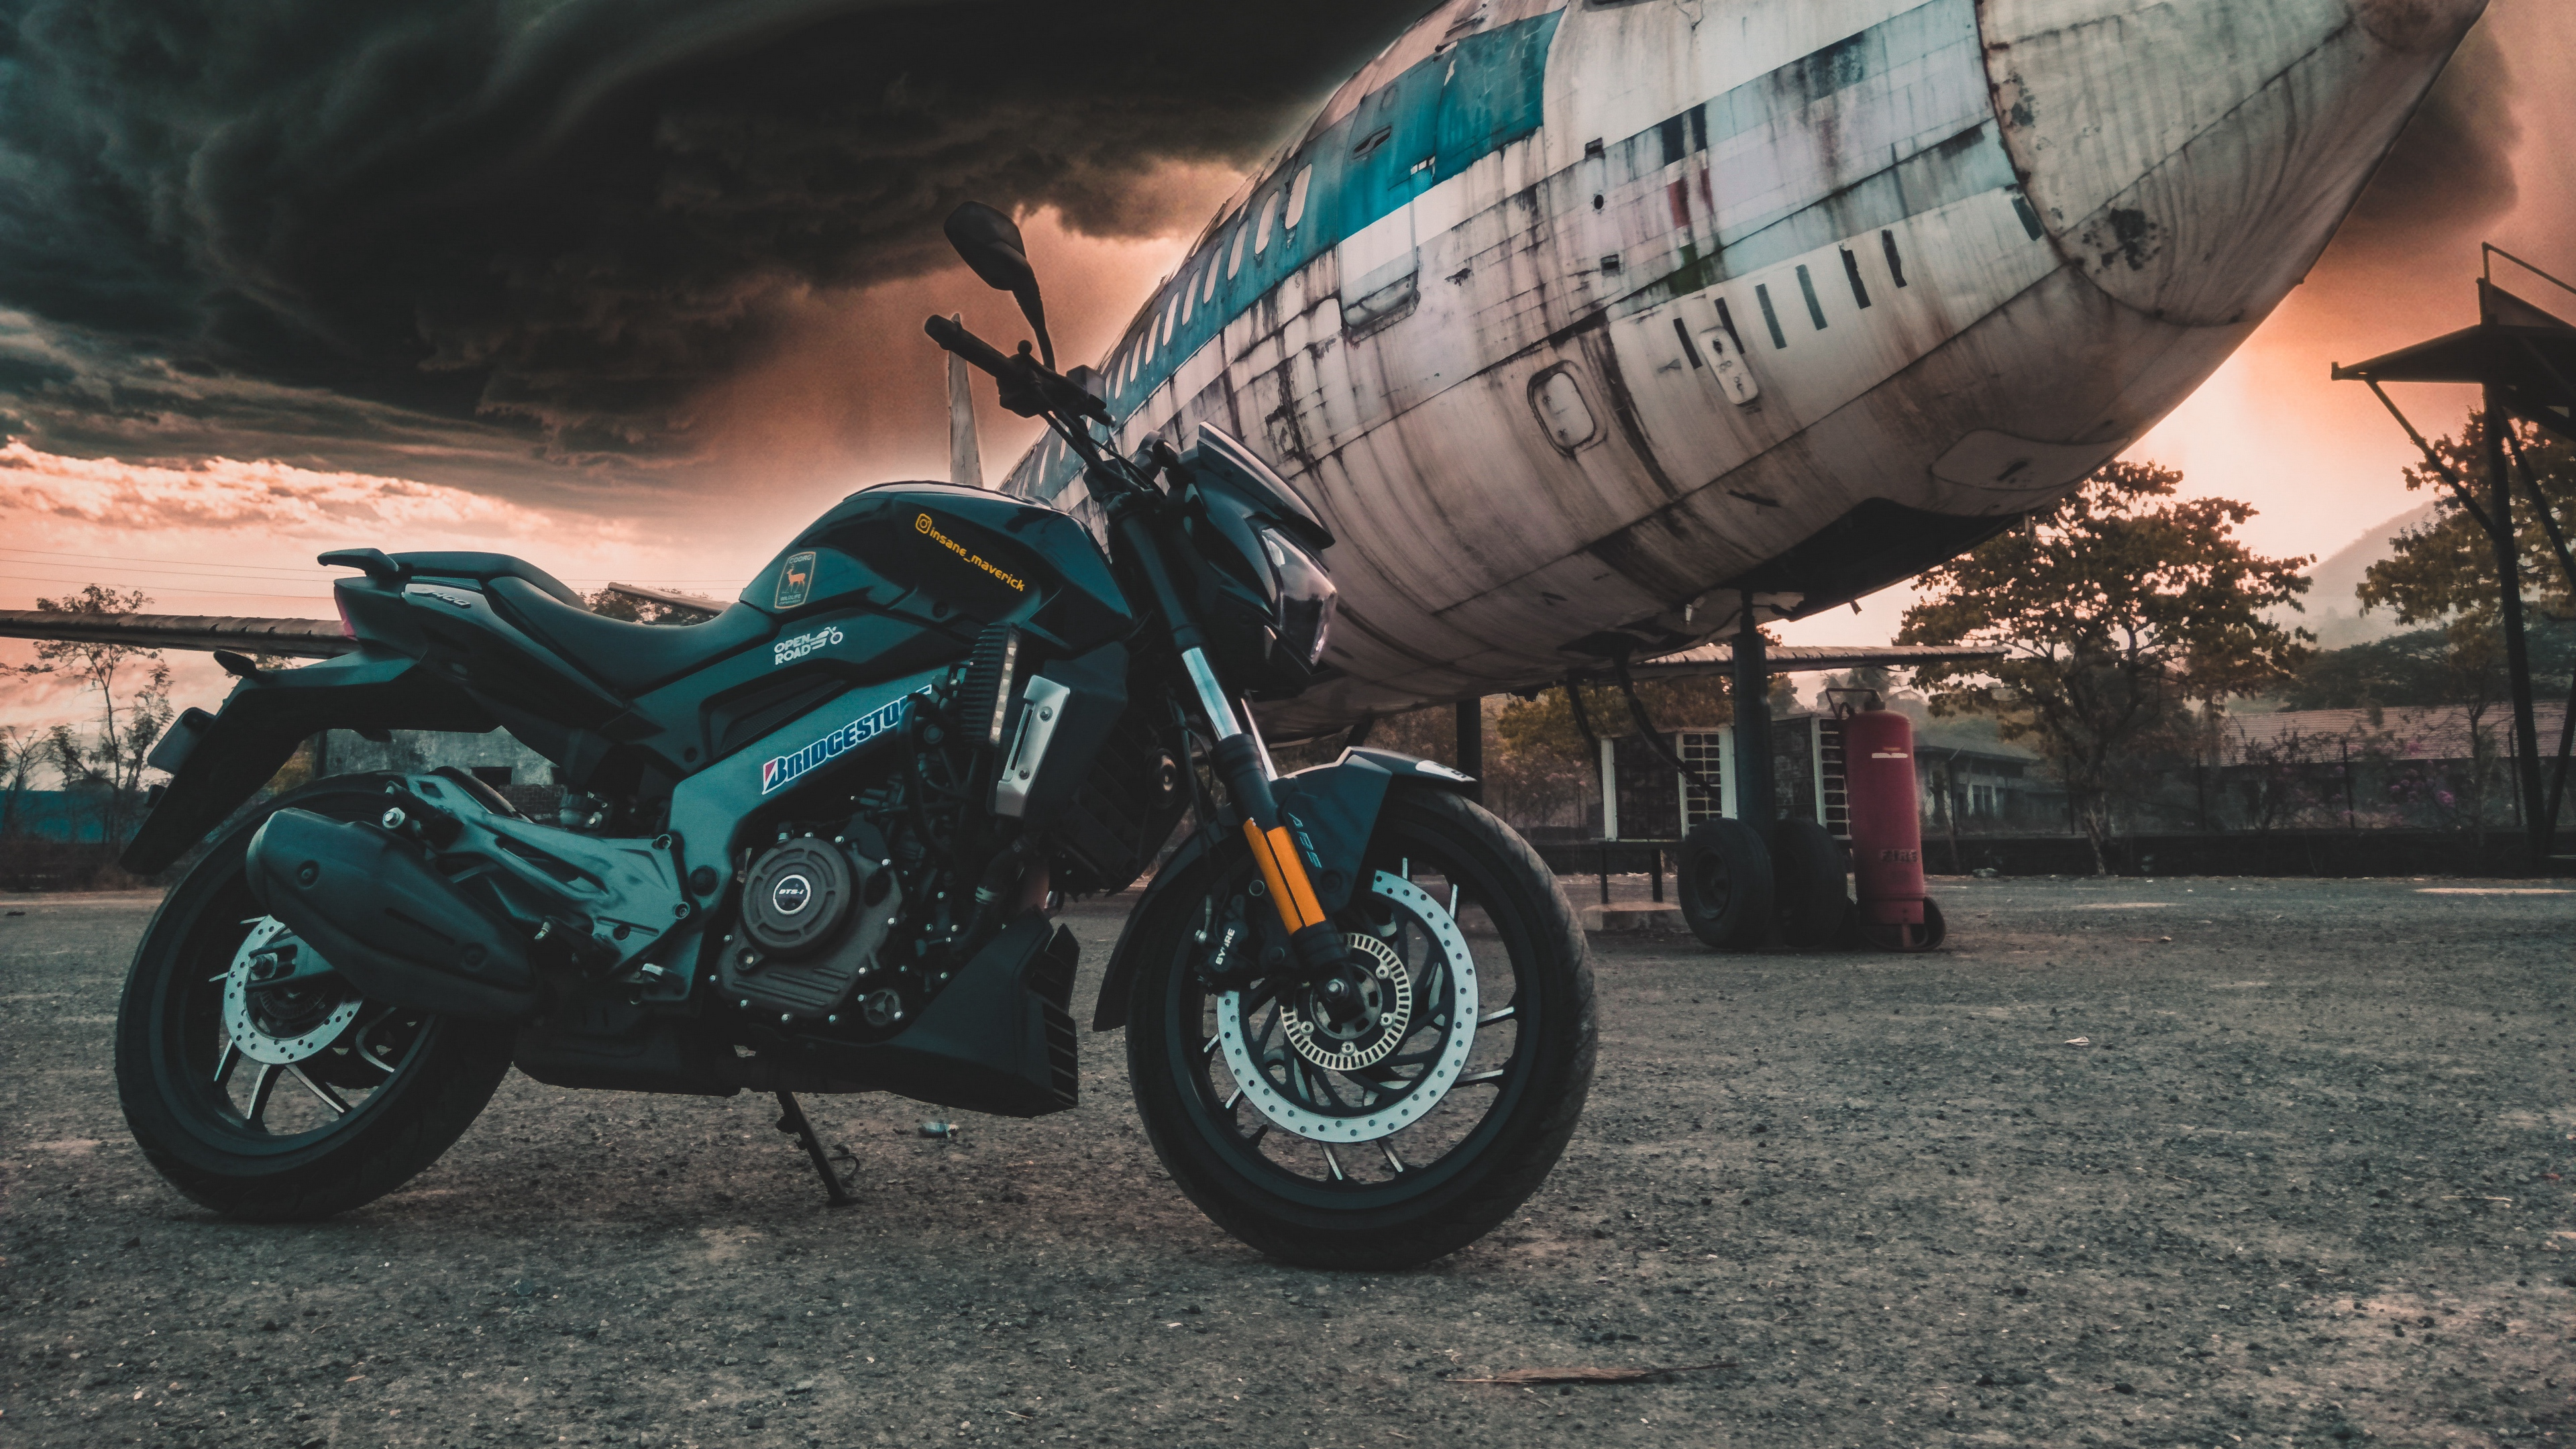 motorcycle airplane side view clouds overcast 4k 1536018856 - motorcycle, airplane, side view, clouds, overcast 4k - side view, Motorcycle, Airplane